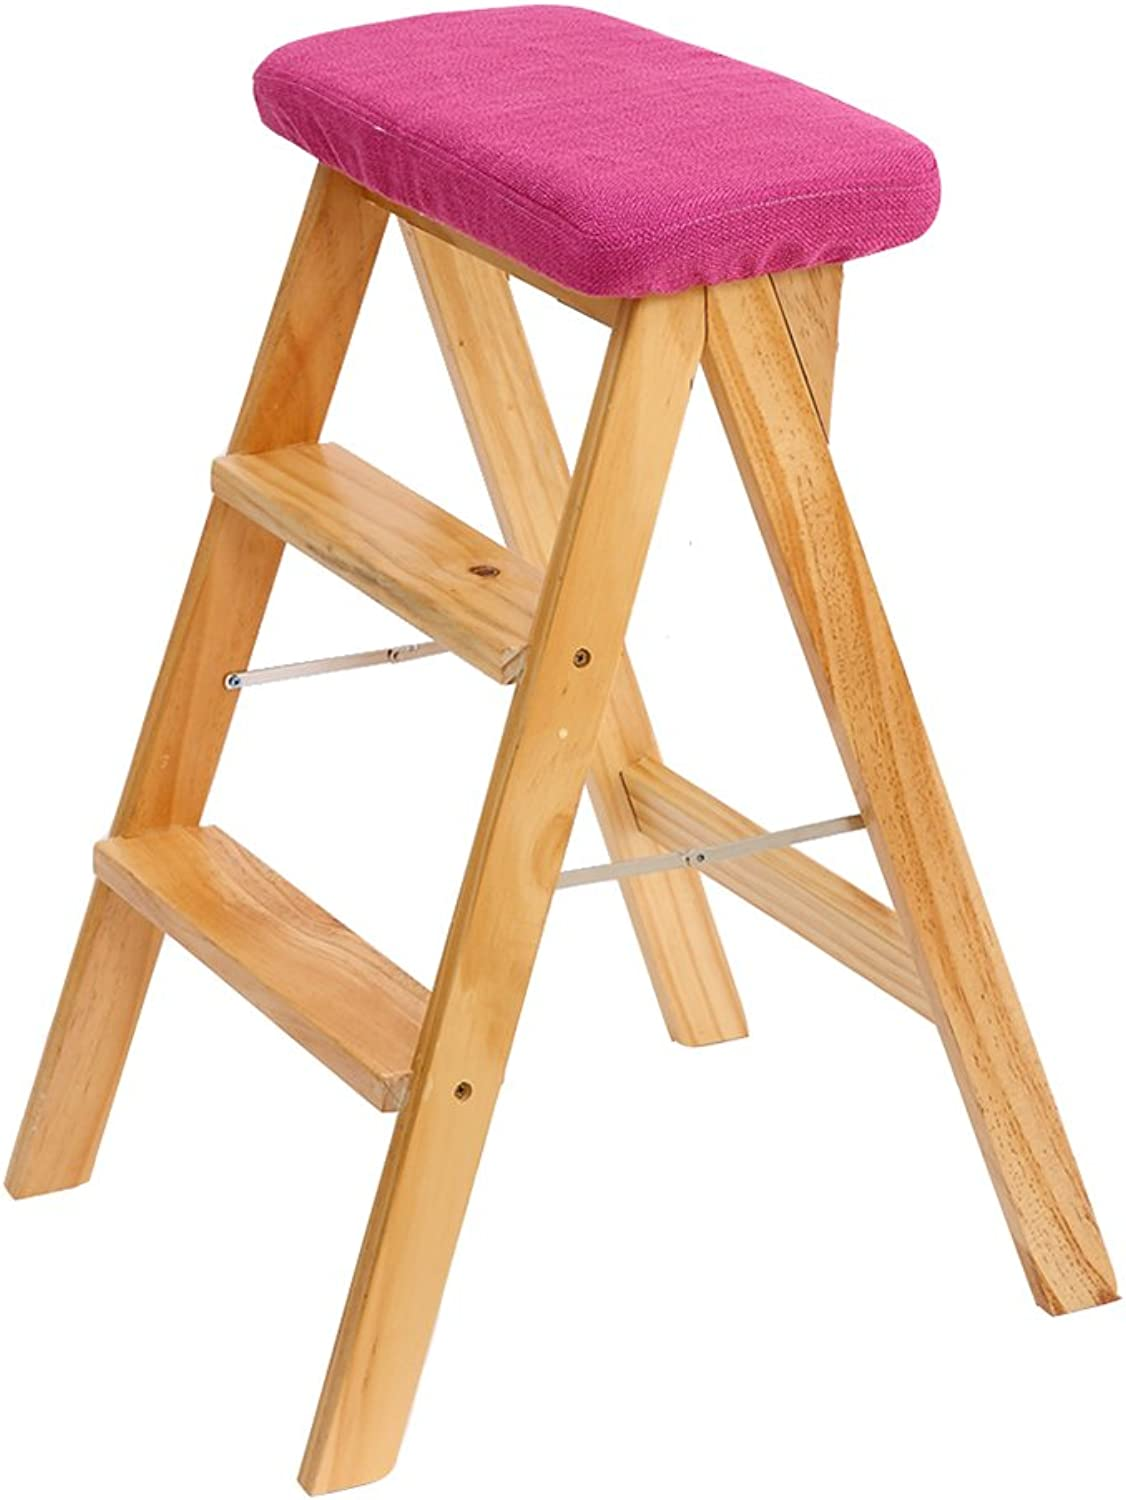 WUFENG Ladder Stool Simple Portable Folding Wooden Bench Step Stool Indoor (color   B, Size   42x49x63cm)